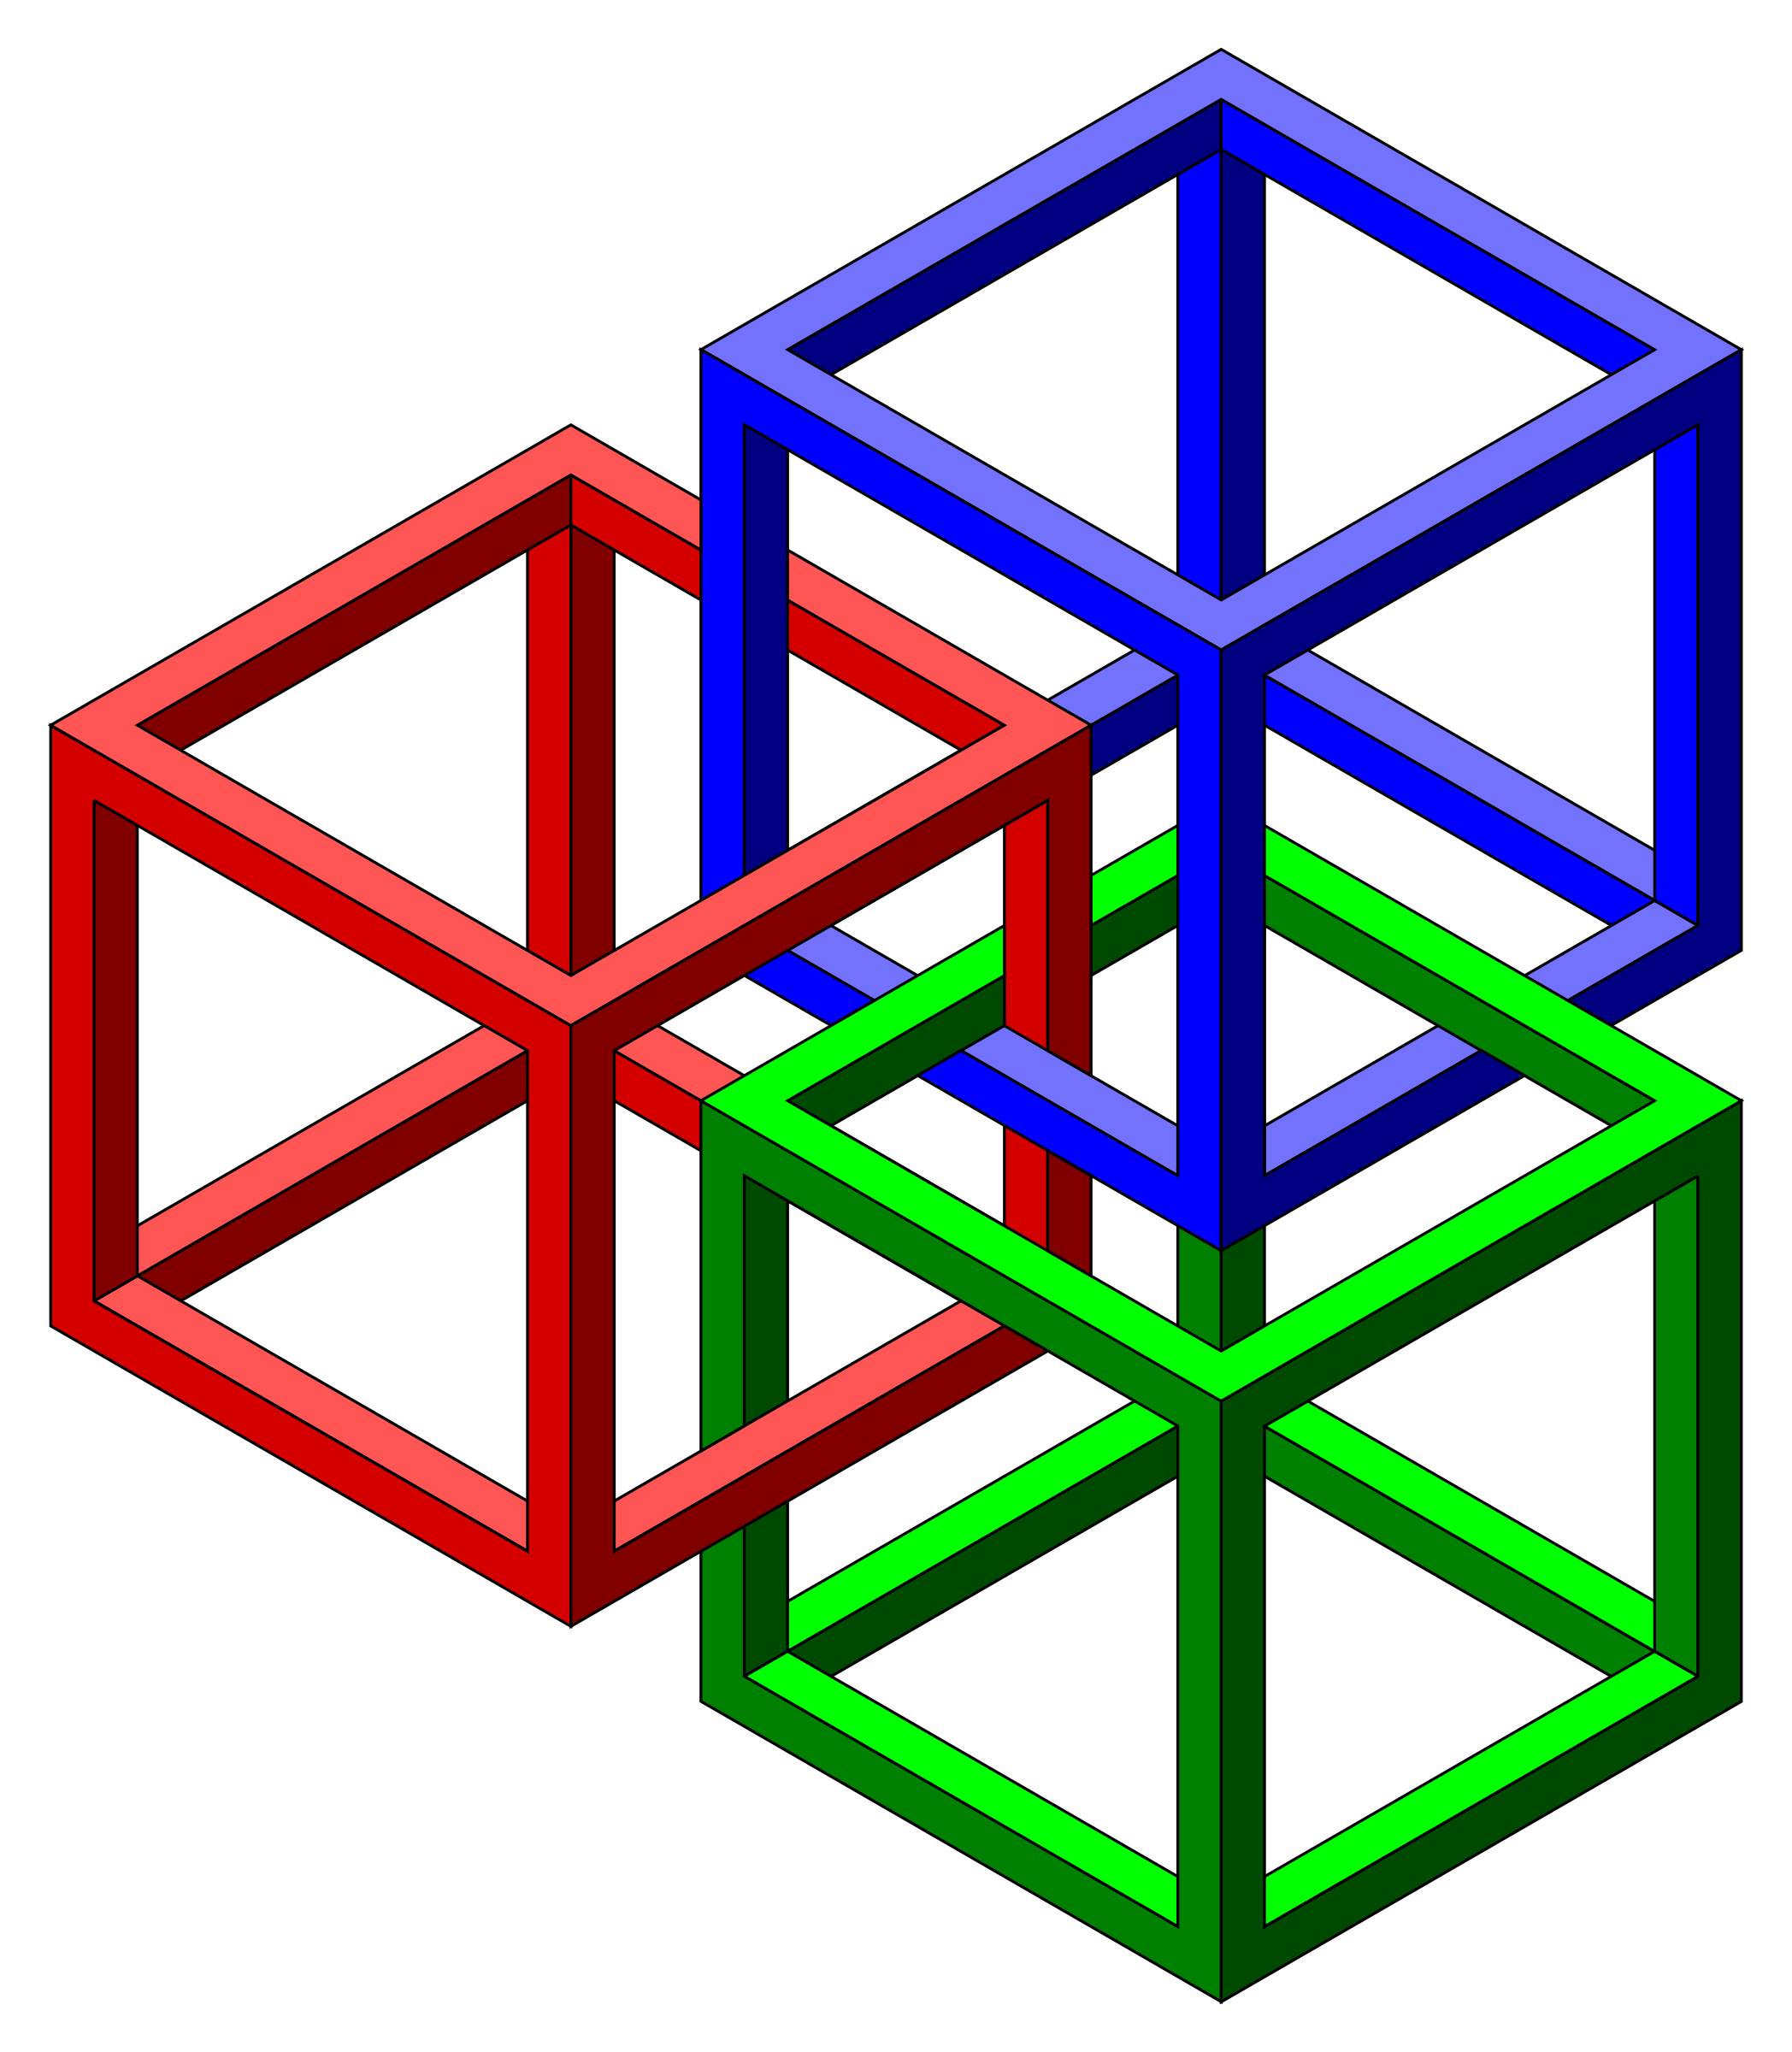 Impossible cubes by jarda